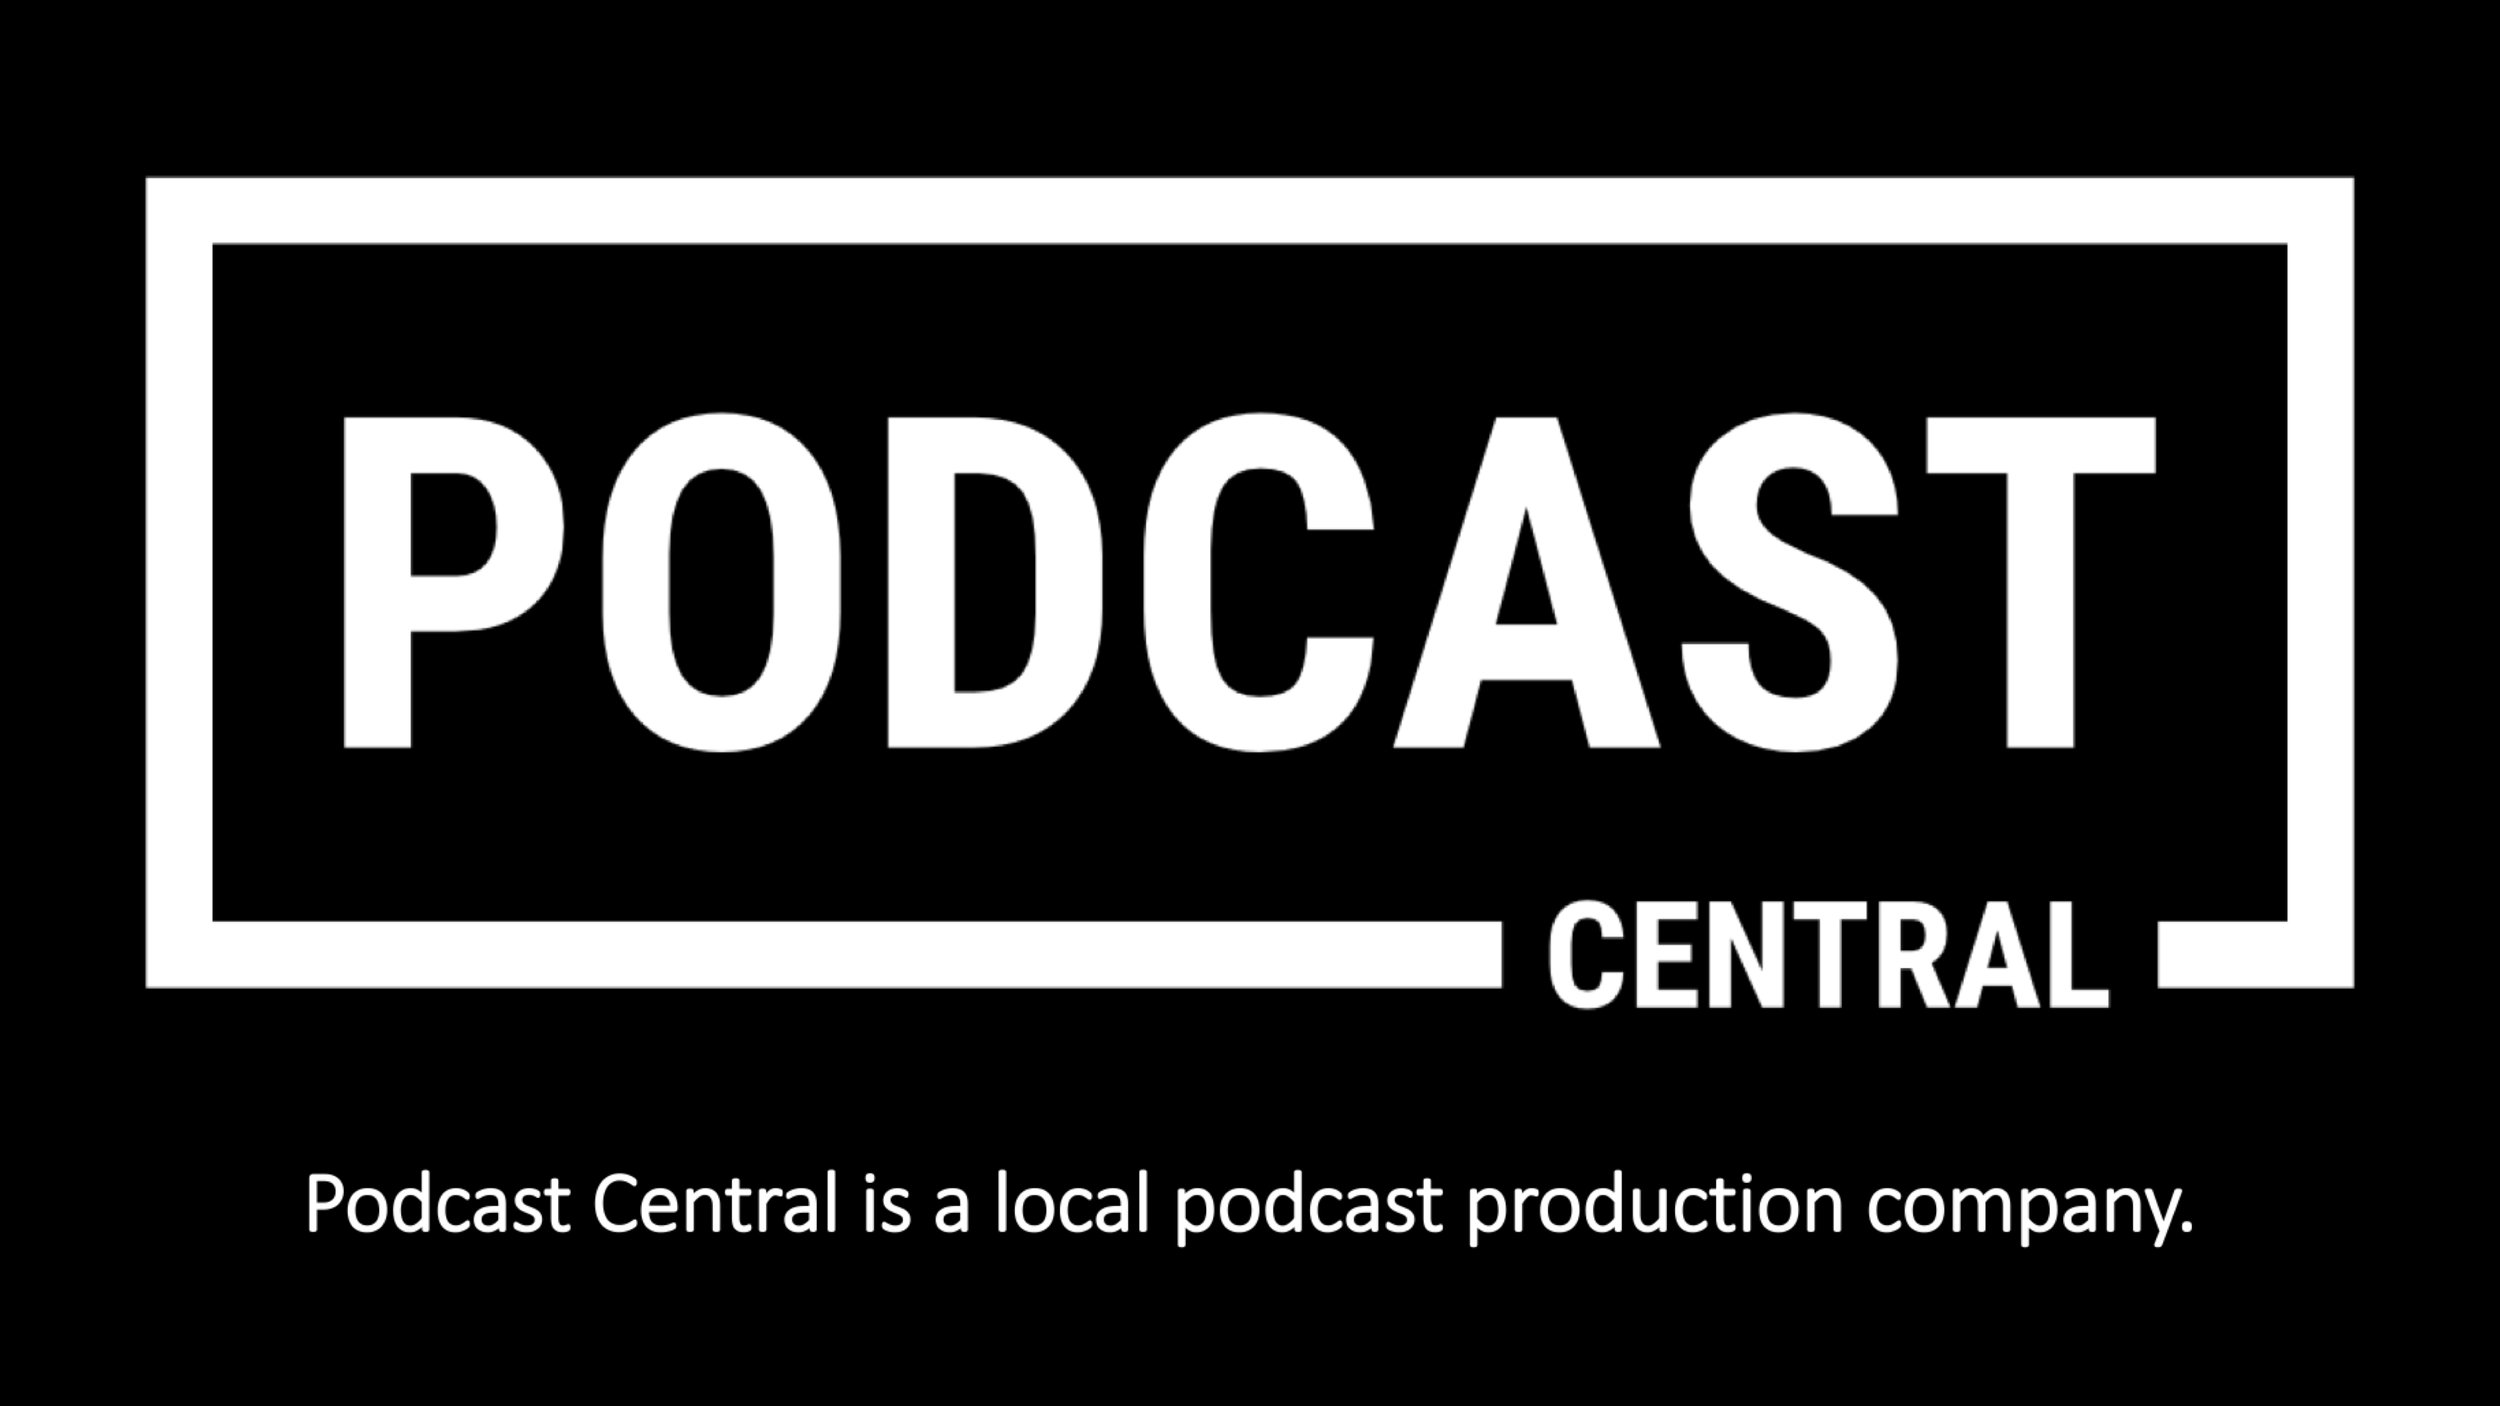 Podcast Central_Pitch Deck_12062018_6.jpg